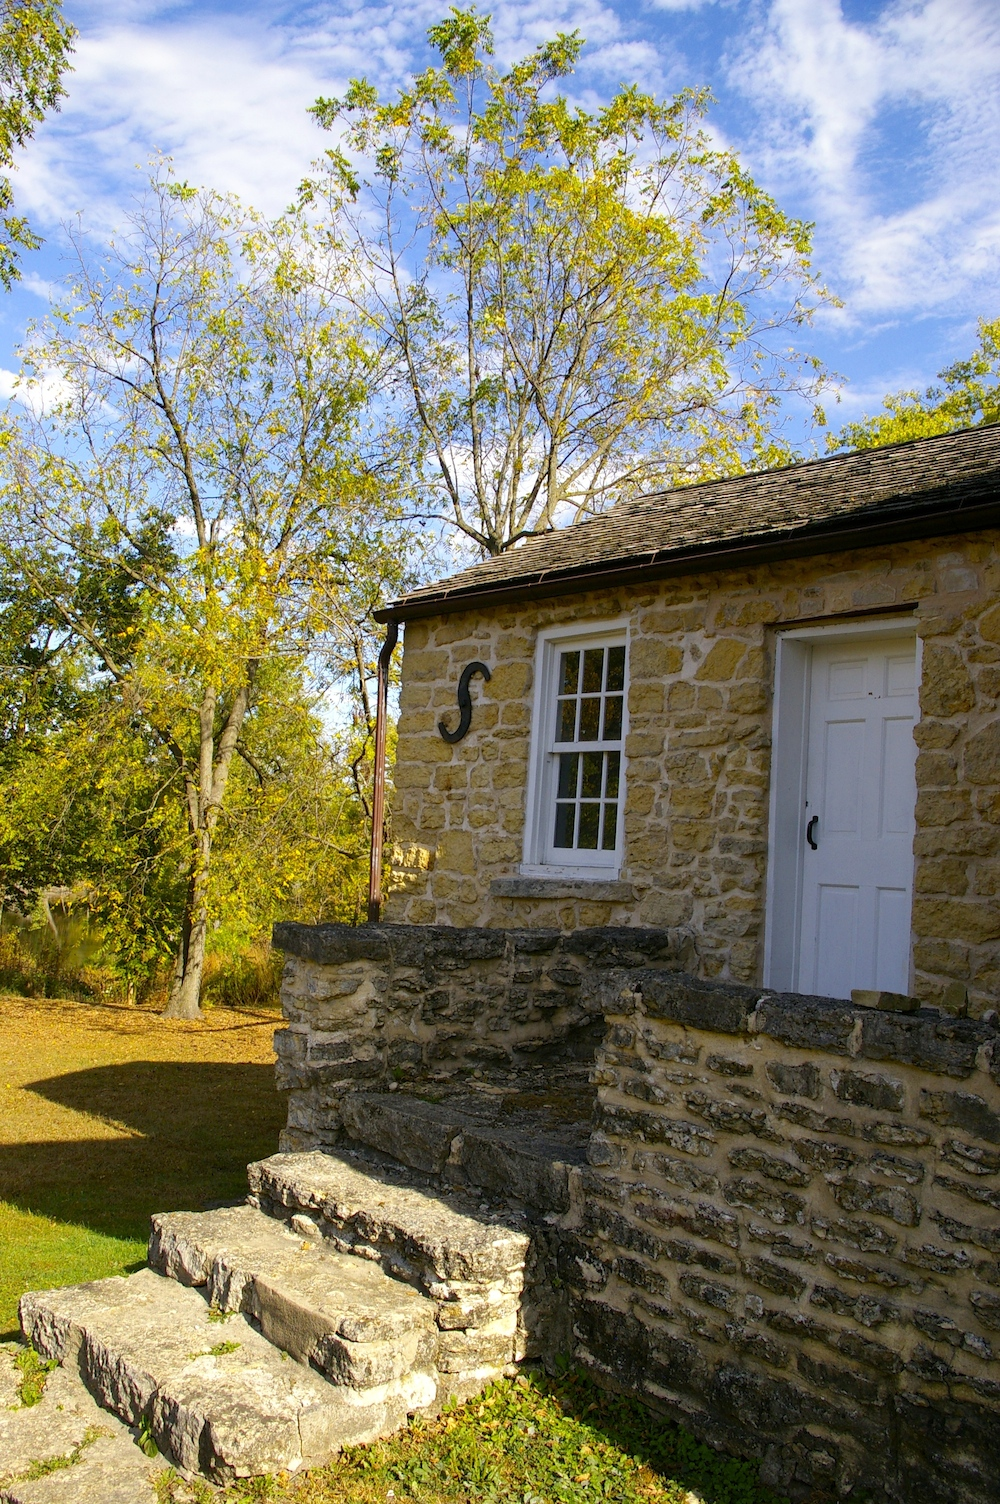 Limestone exterior of Whitman Trading Post in the historic Macktown settlement in Rockton, Illinois